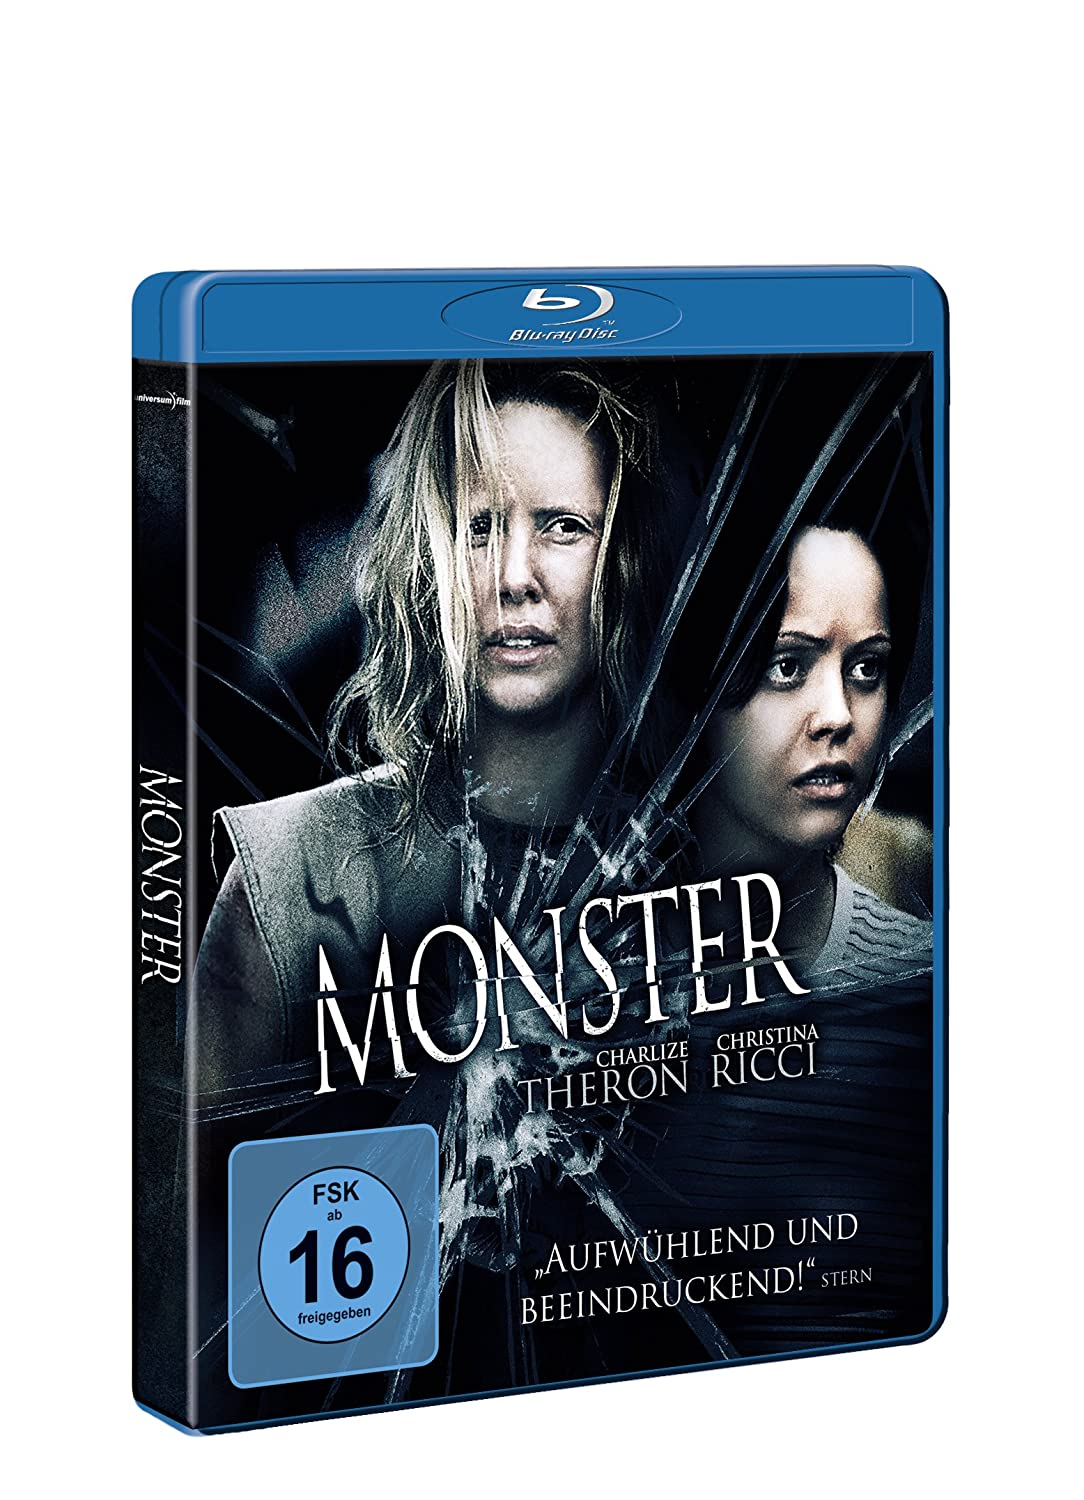 Monster [Alemania] [Blu-ray]: Amazon.es: Charlize Theron, Christina Ricci, Bruce Dern, Scott Wilson, Annie Corley, Pruitt Taylor Vince, Marc Macaulay, ...